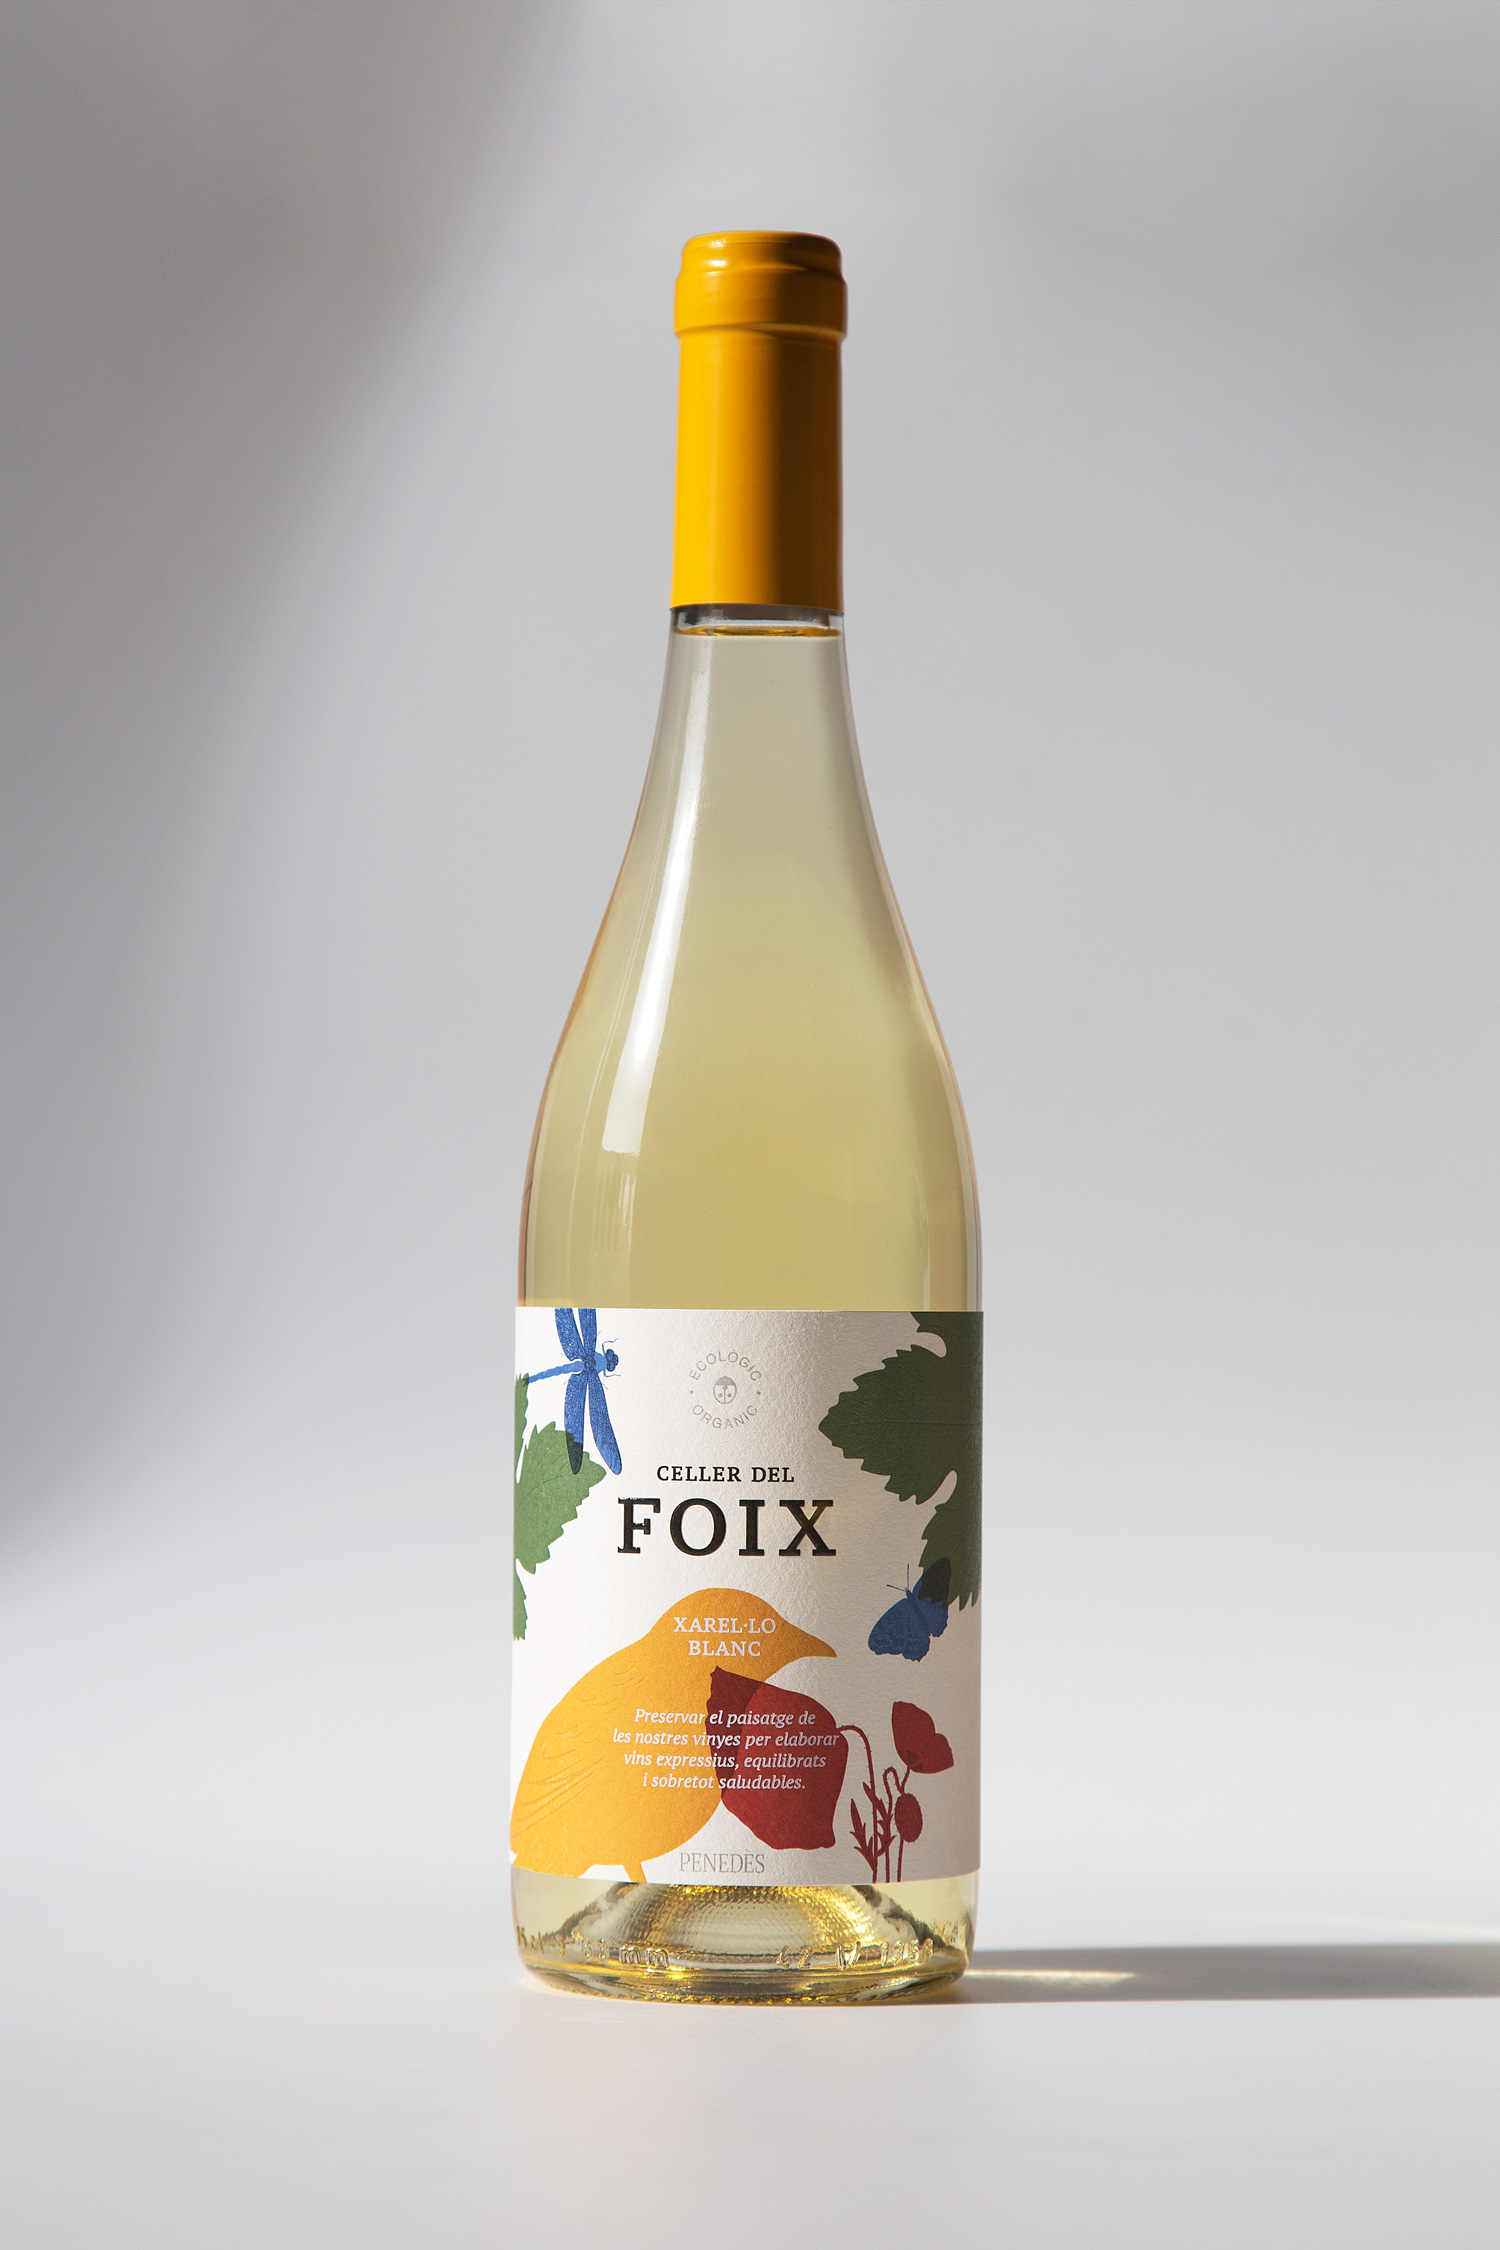 Made by us Agency Helps Celler de Foix Celebrate the Beauty of Biodiversity